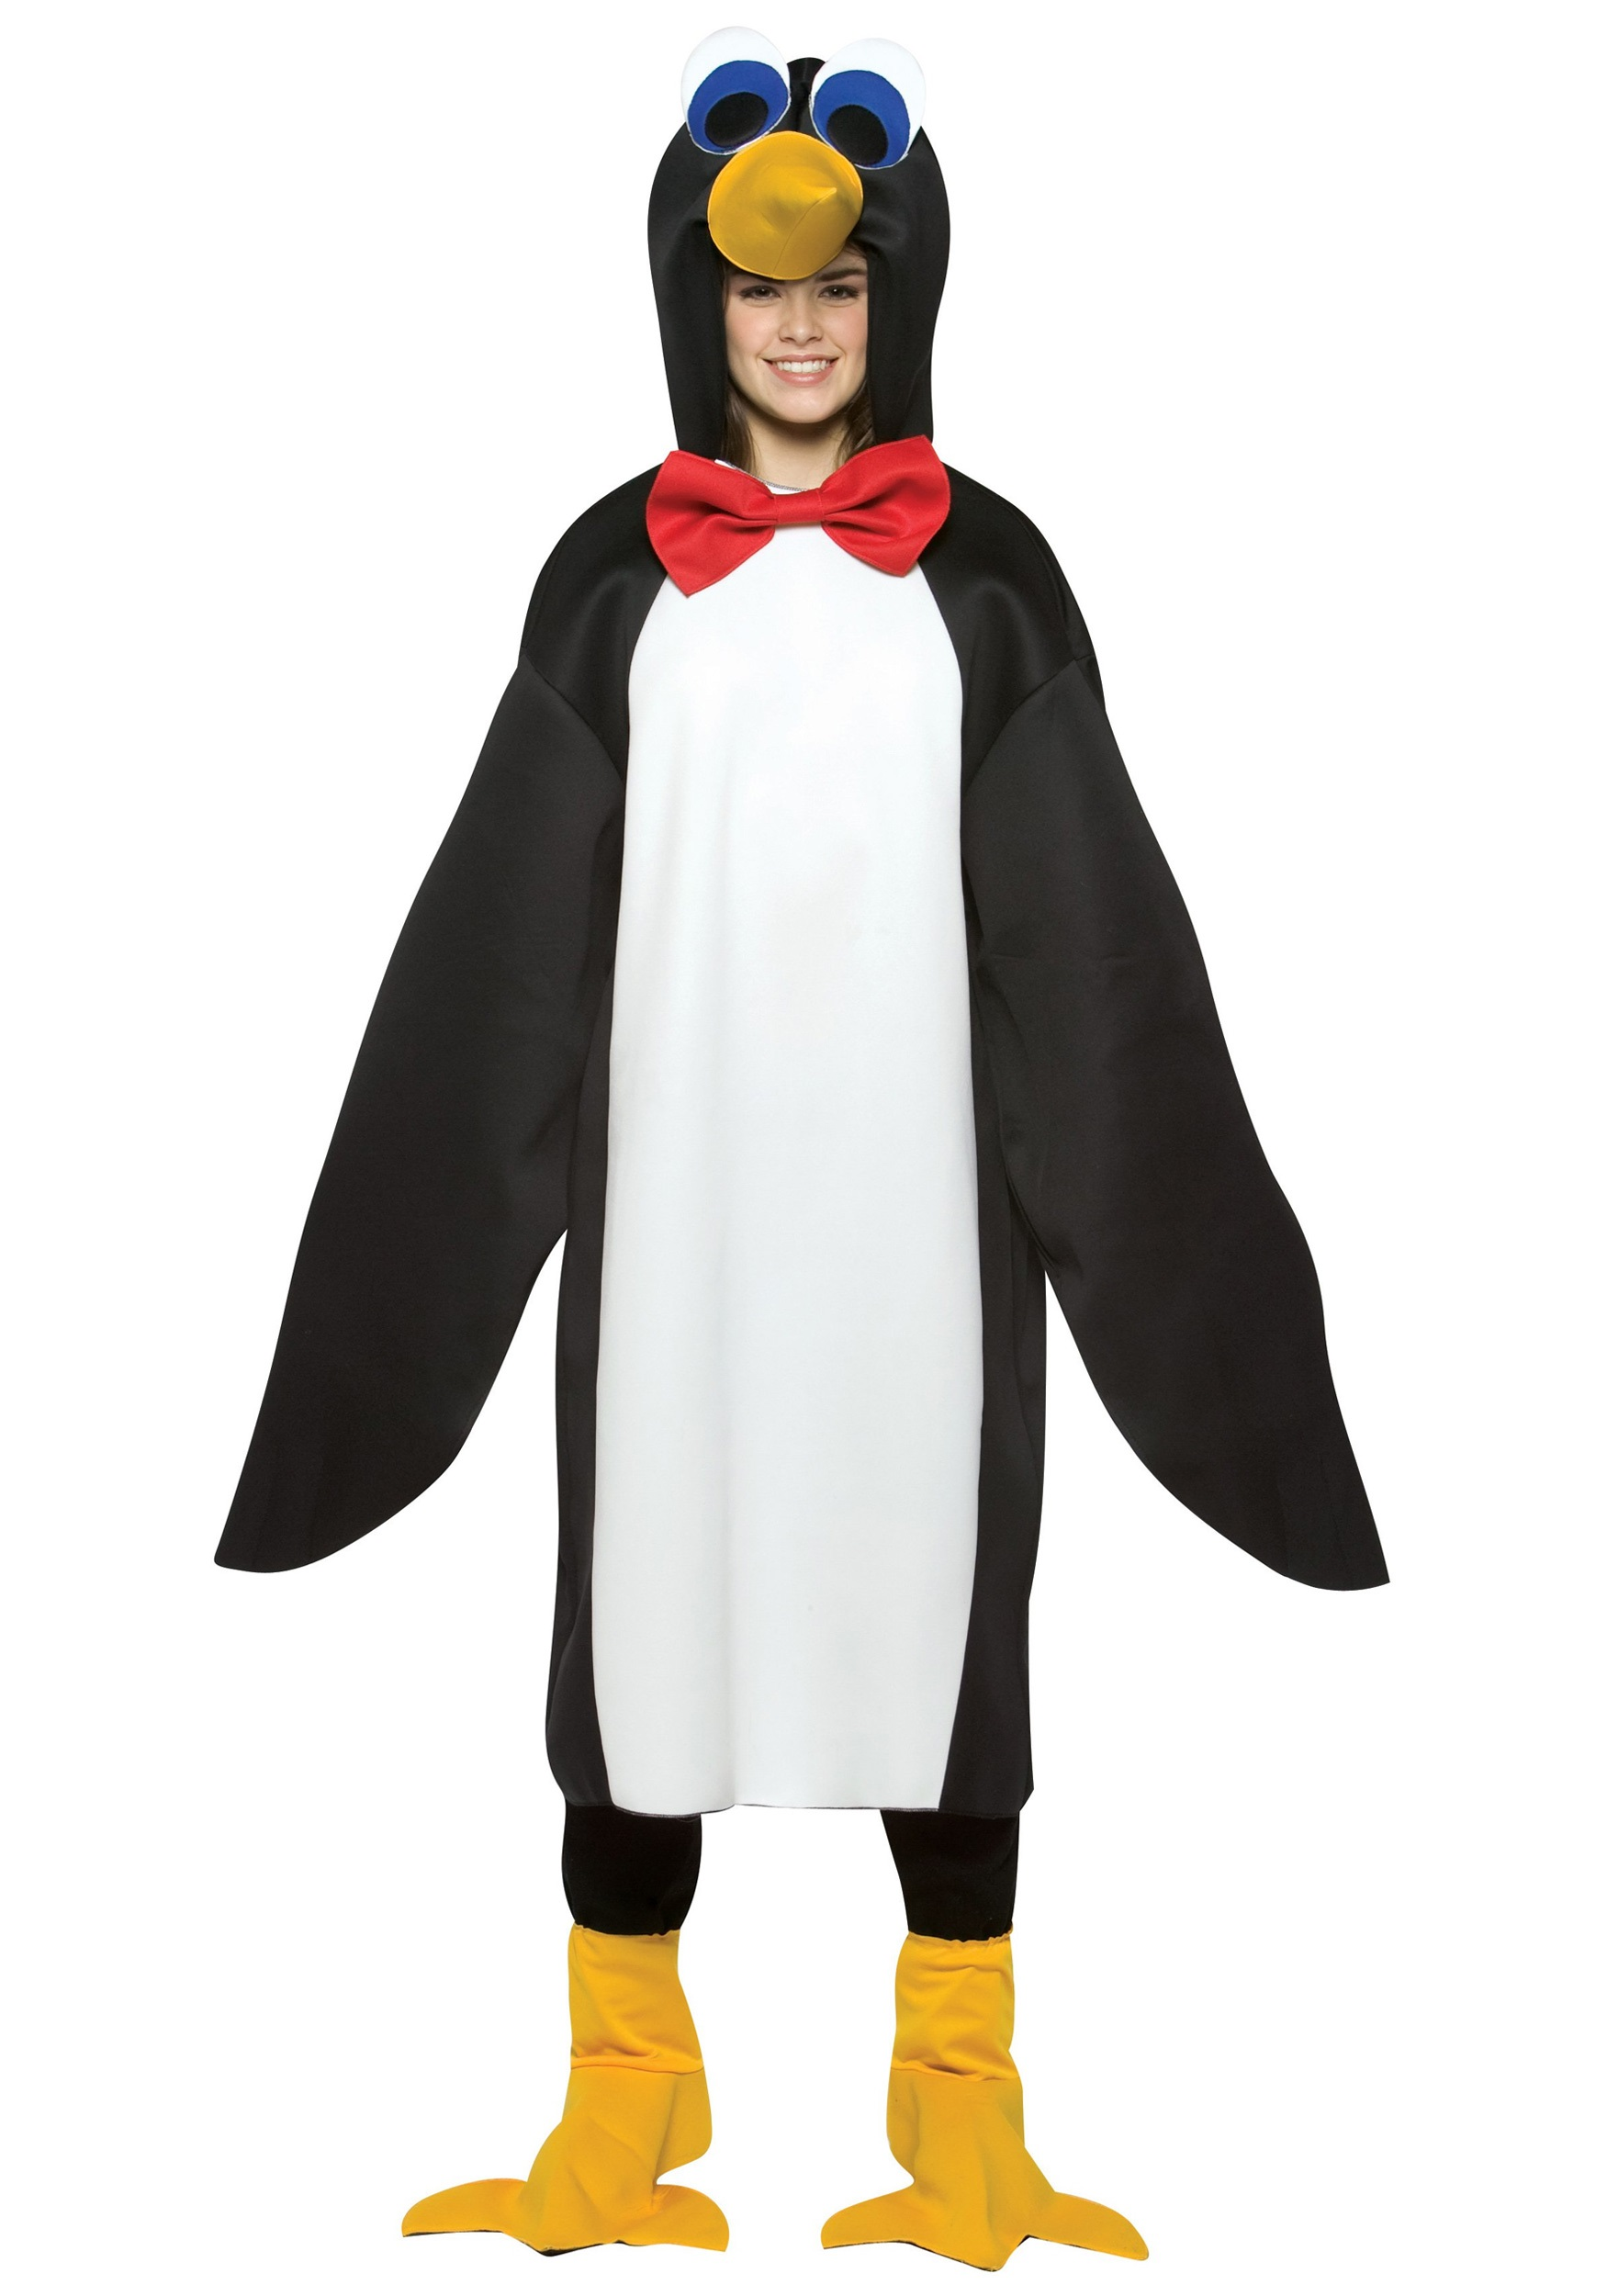 Teen Penguin Costume  sc 1 st  Halloween Costumes & Halloween Costumes for Teens u0026 Tweens - HalloweenCostumes.com